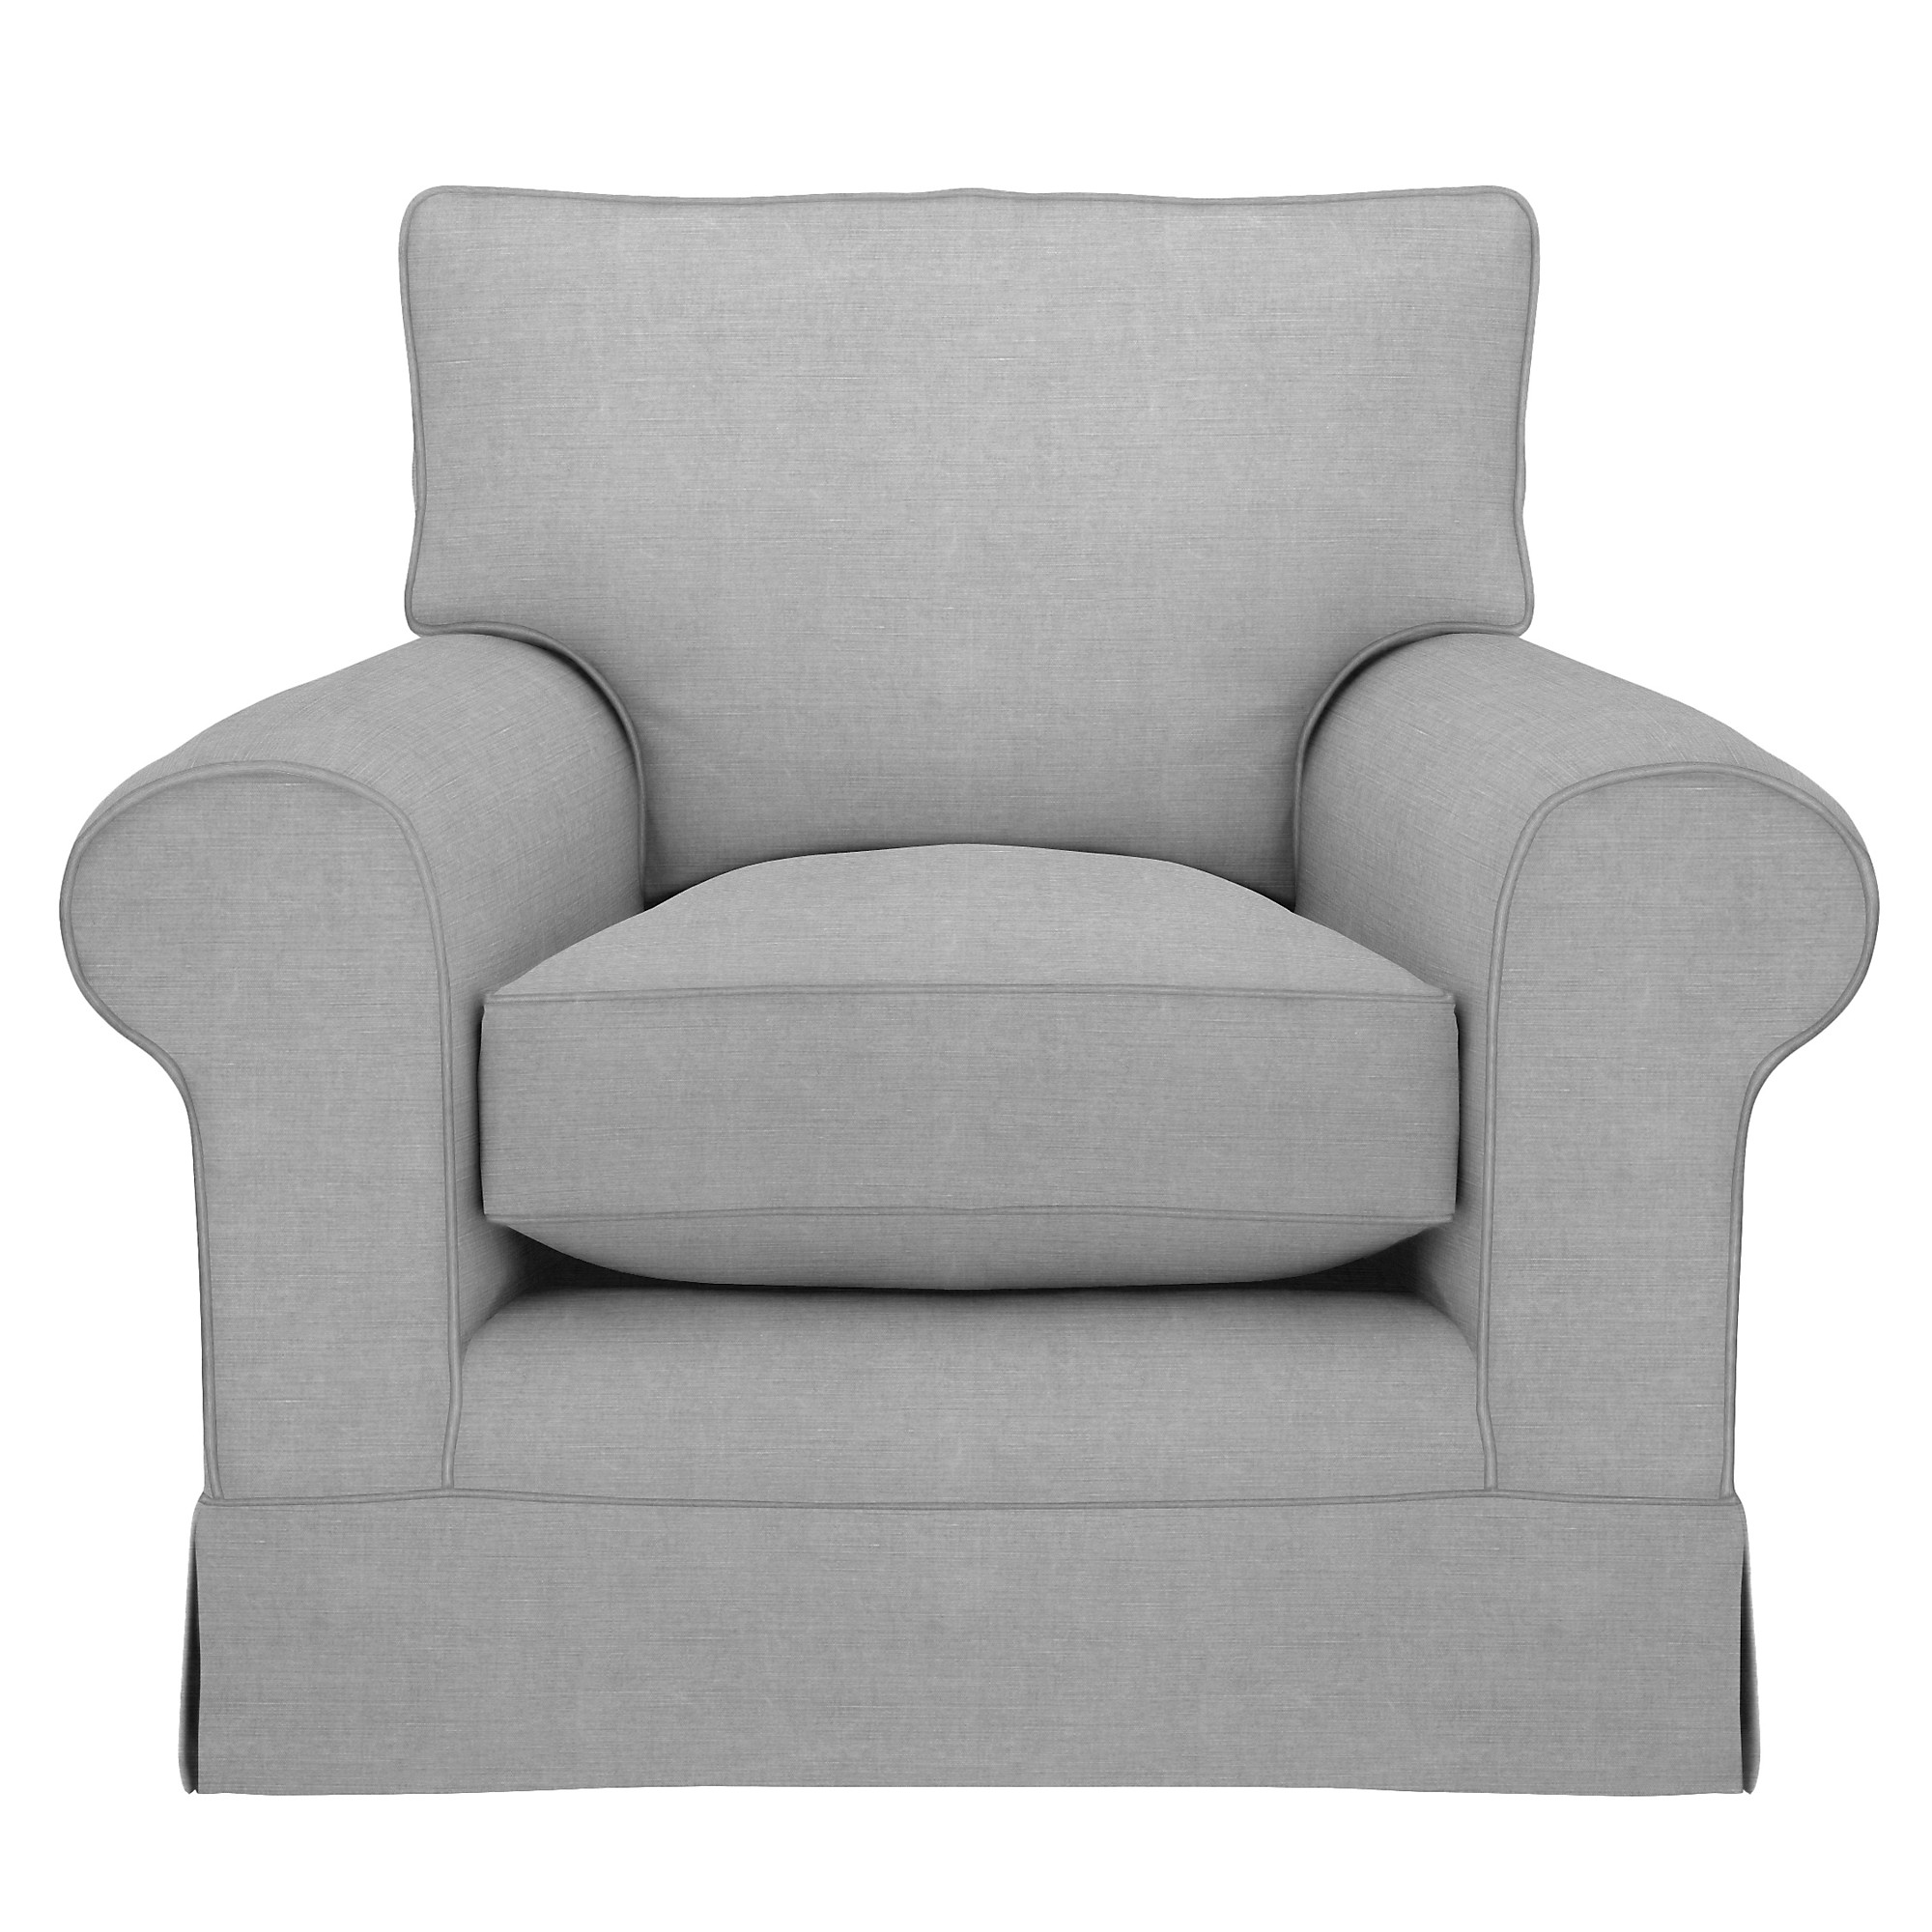 armchair covers to buy 28 images spandex chair cover  : John Lewis Padstow Fixed Cover Armchair from wallpapersist.com size 2000 x 2000 jpeg 508kB